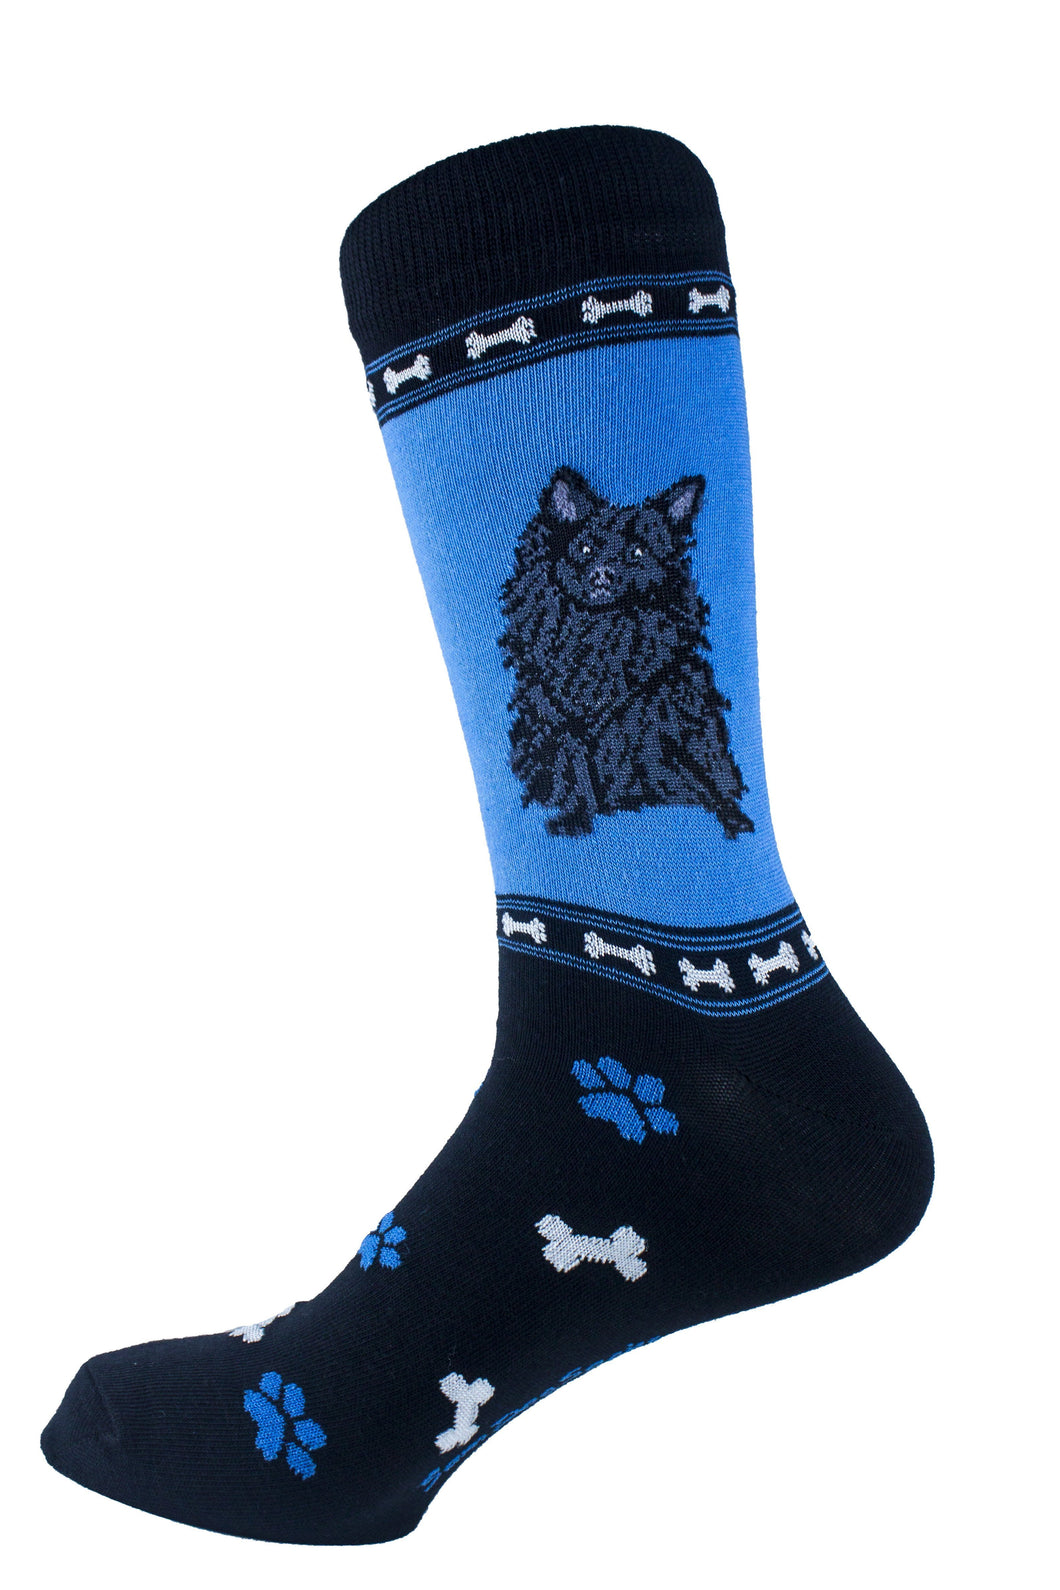 Pomeranian Black Dog Socks Mens Signature